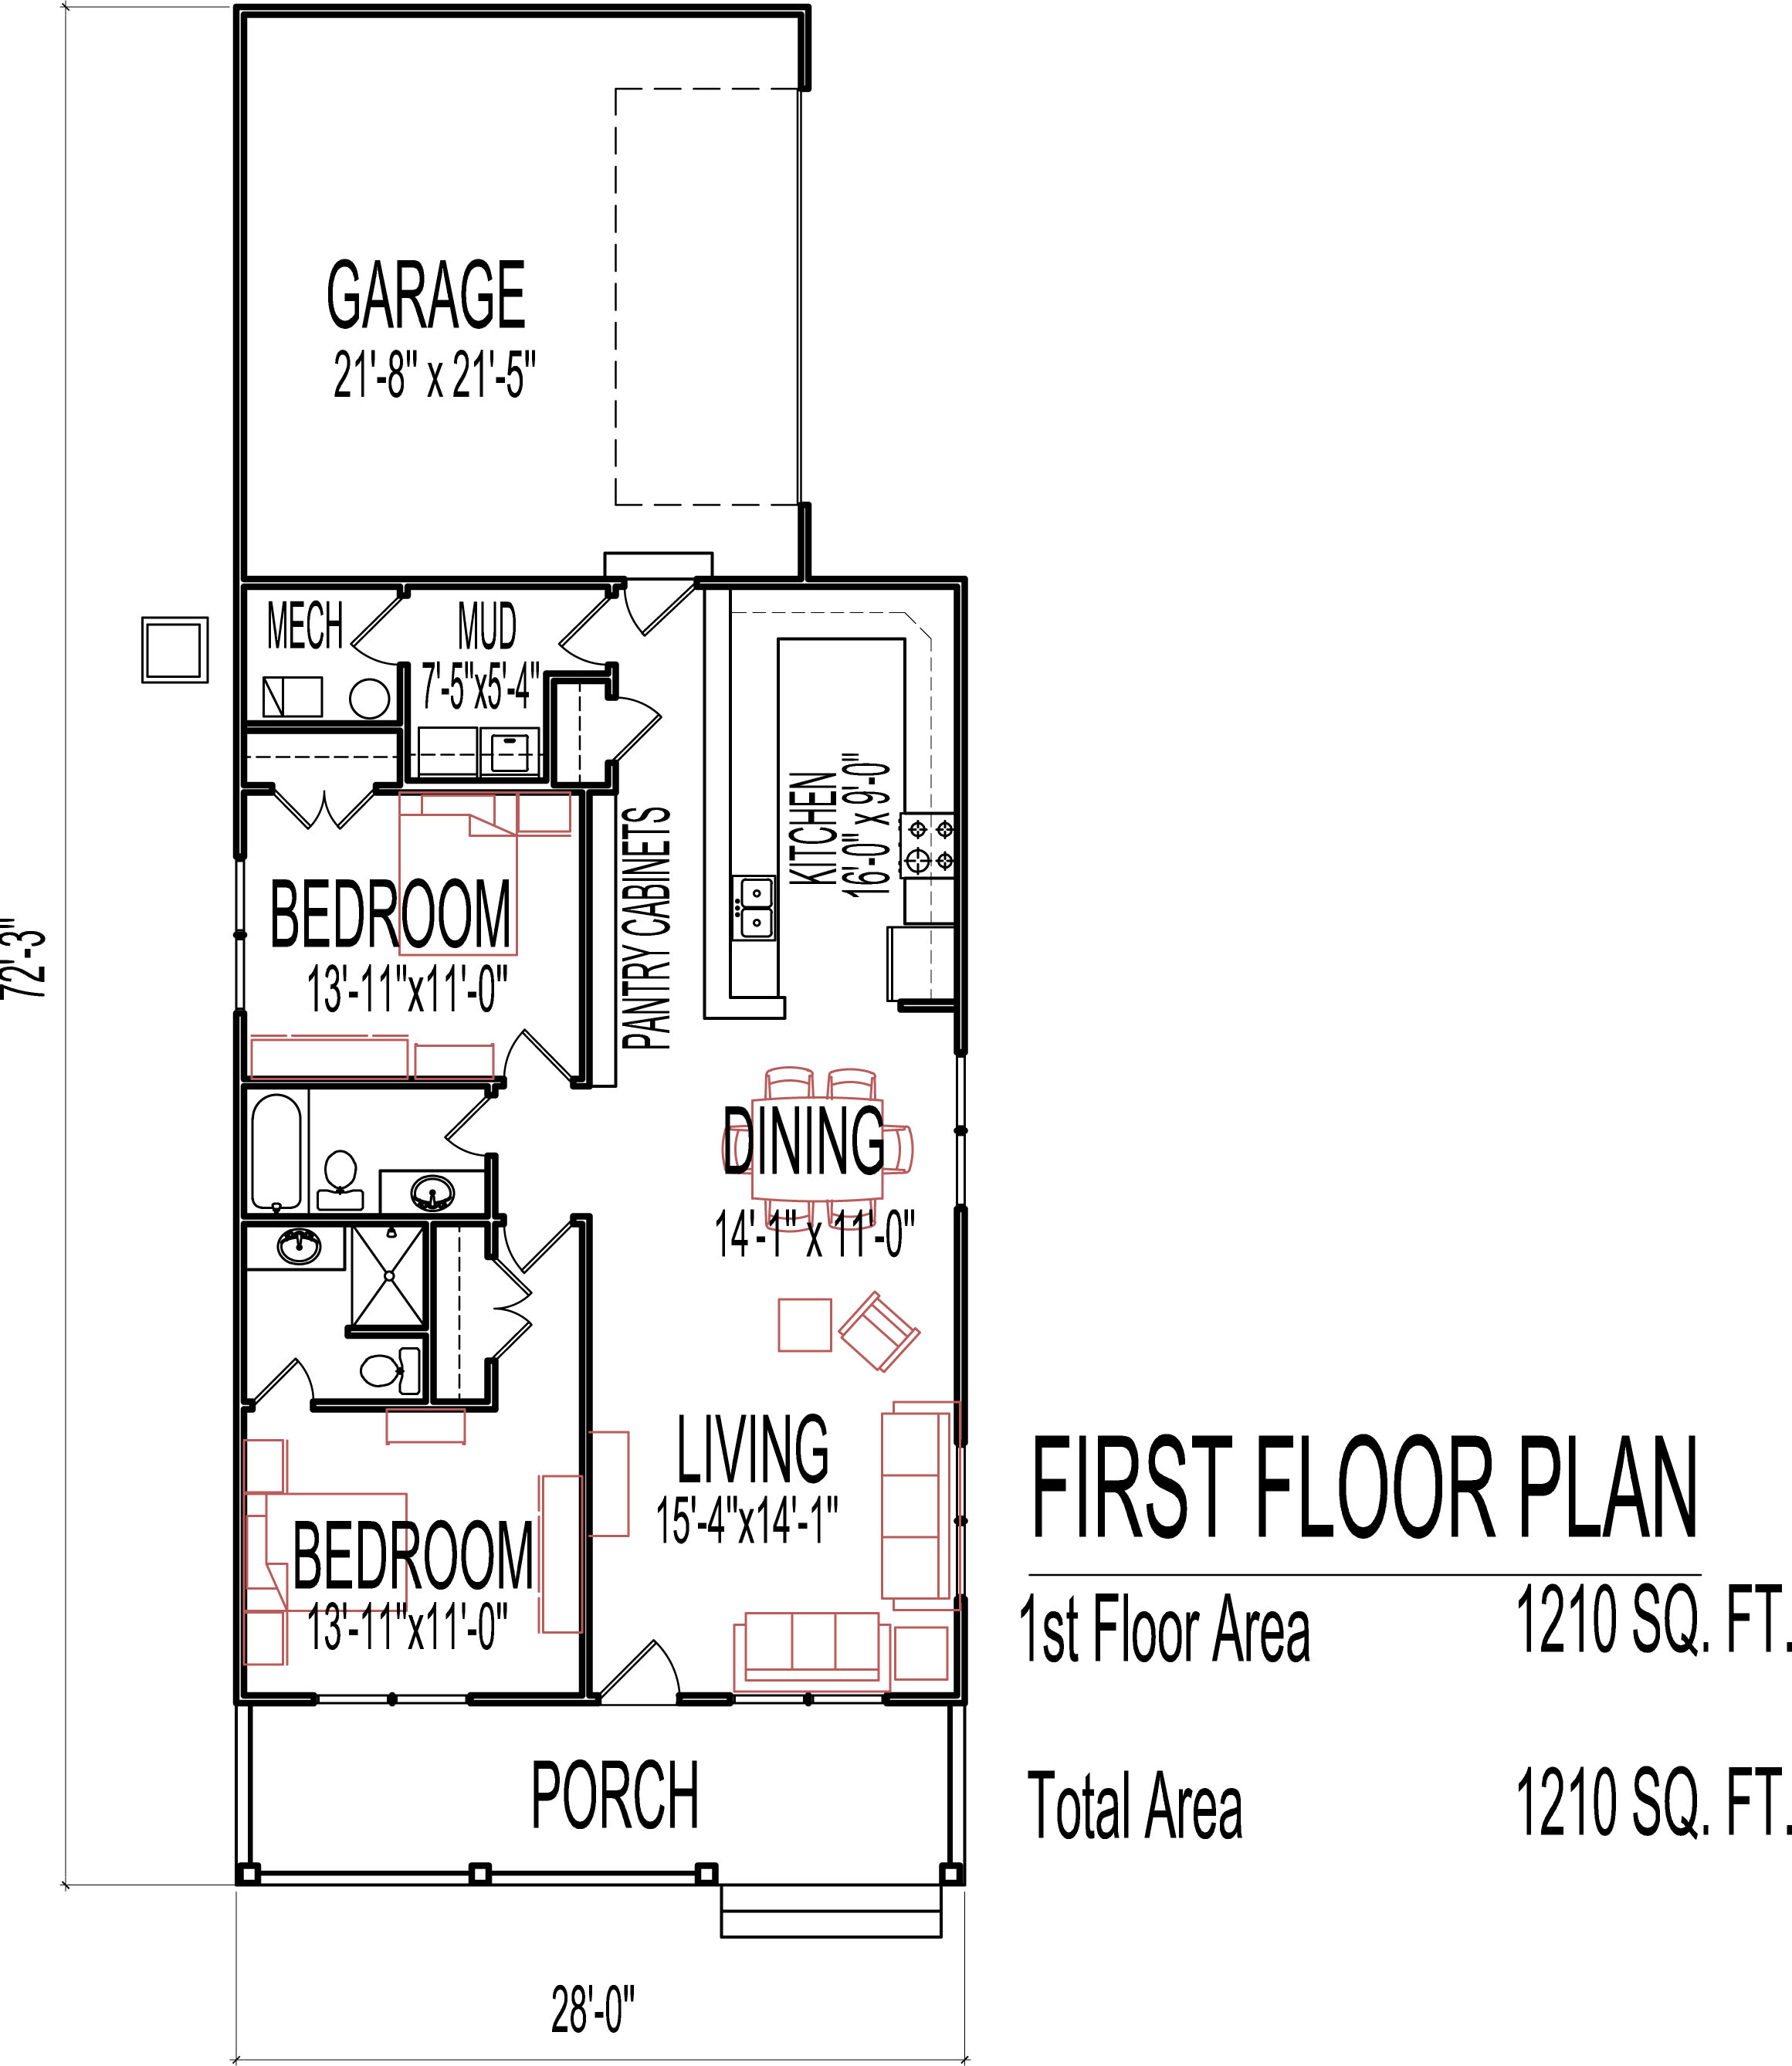 Small two bedroom house plans low cost 1200 sq ft one for Small 2 bedroom house plans